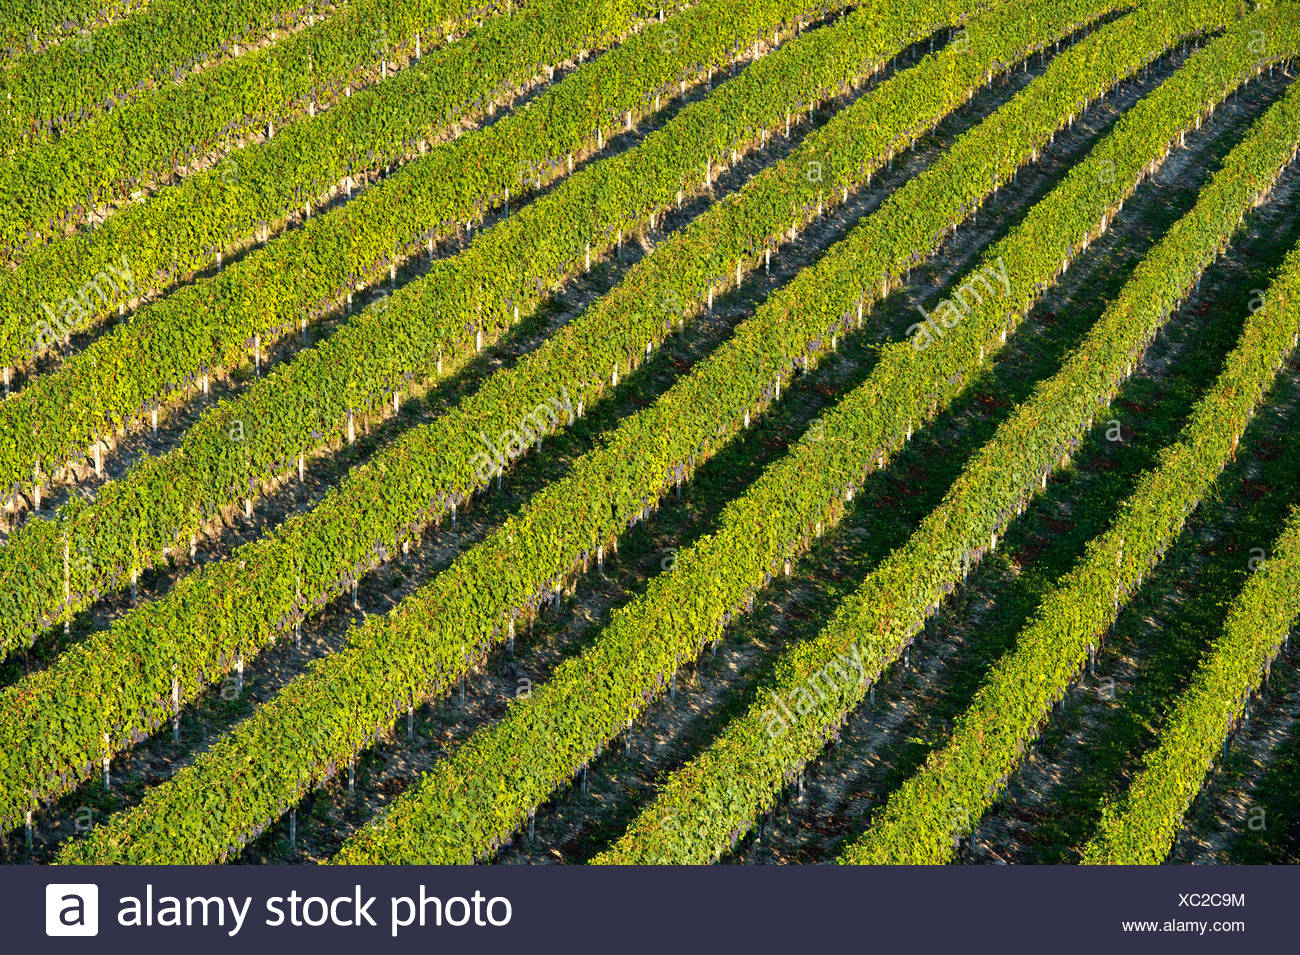 Vineyard with rows of grape vines, Treiso, Piedmont, Italy - Stock Image